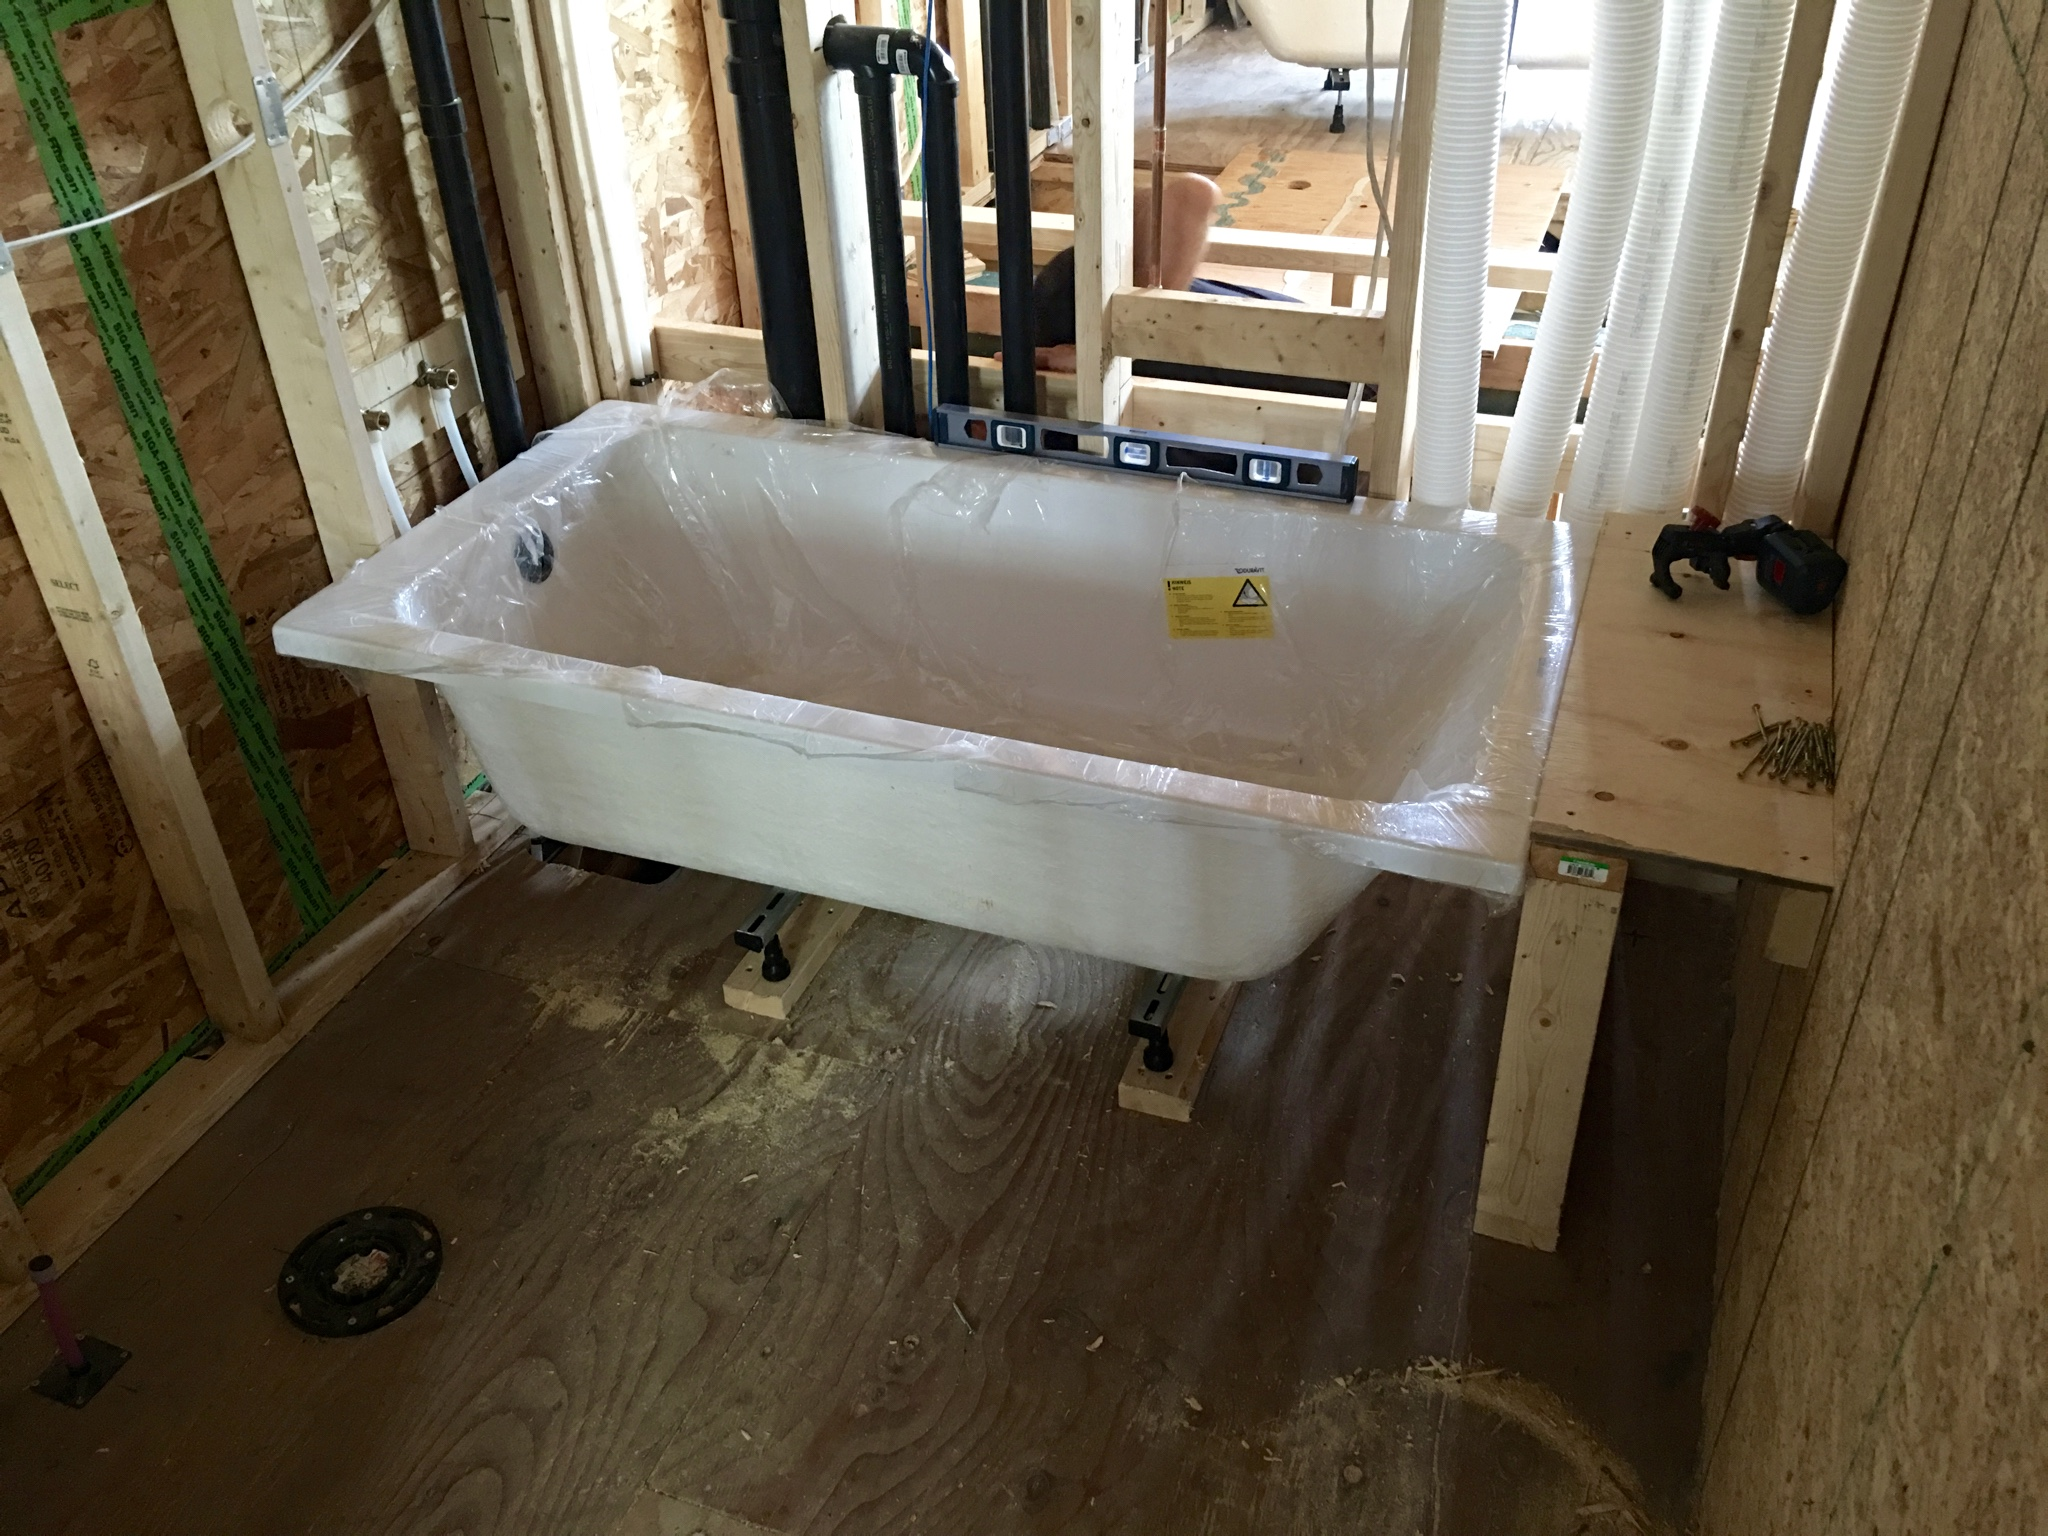 Kids bathtub (concreted added beneath the tub since this photo was taken).